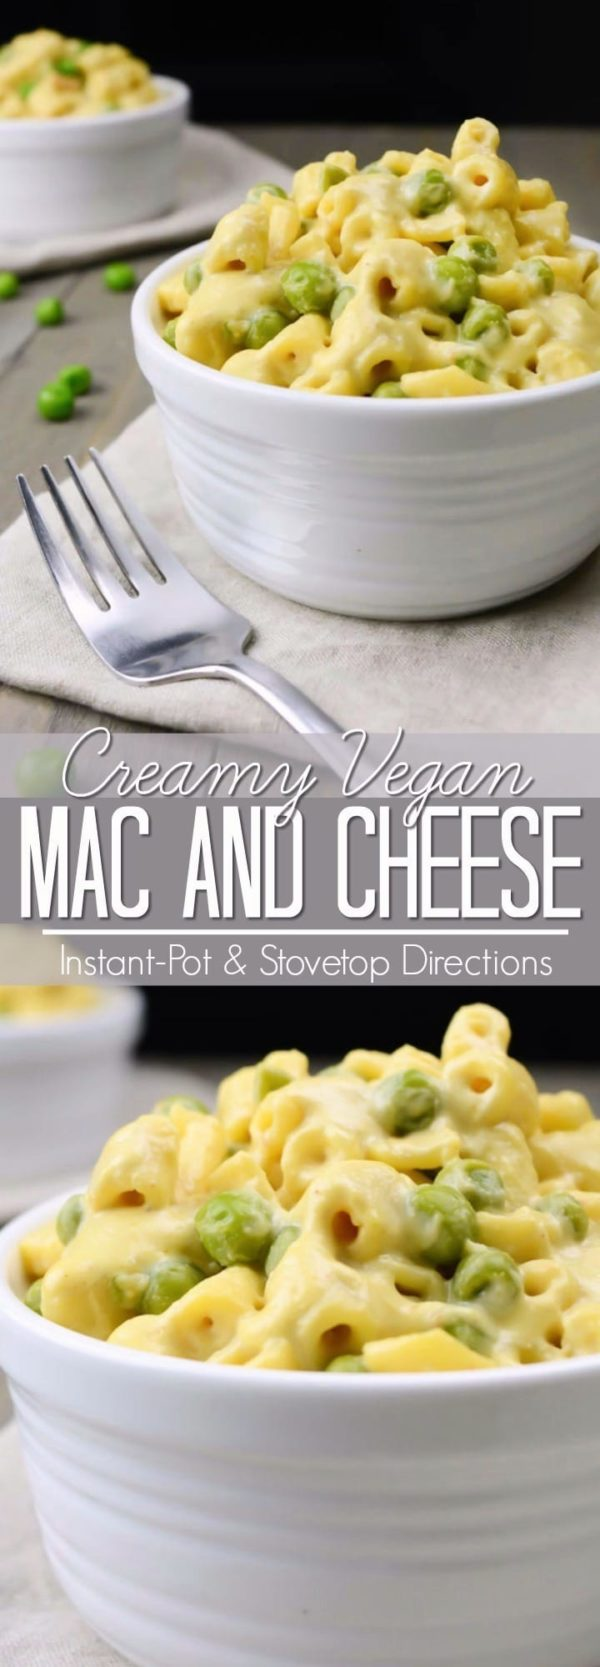 Vegan mac and cheese collage for Pinterest.